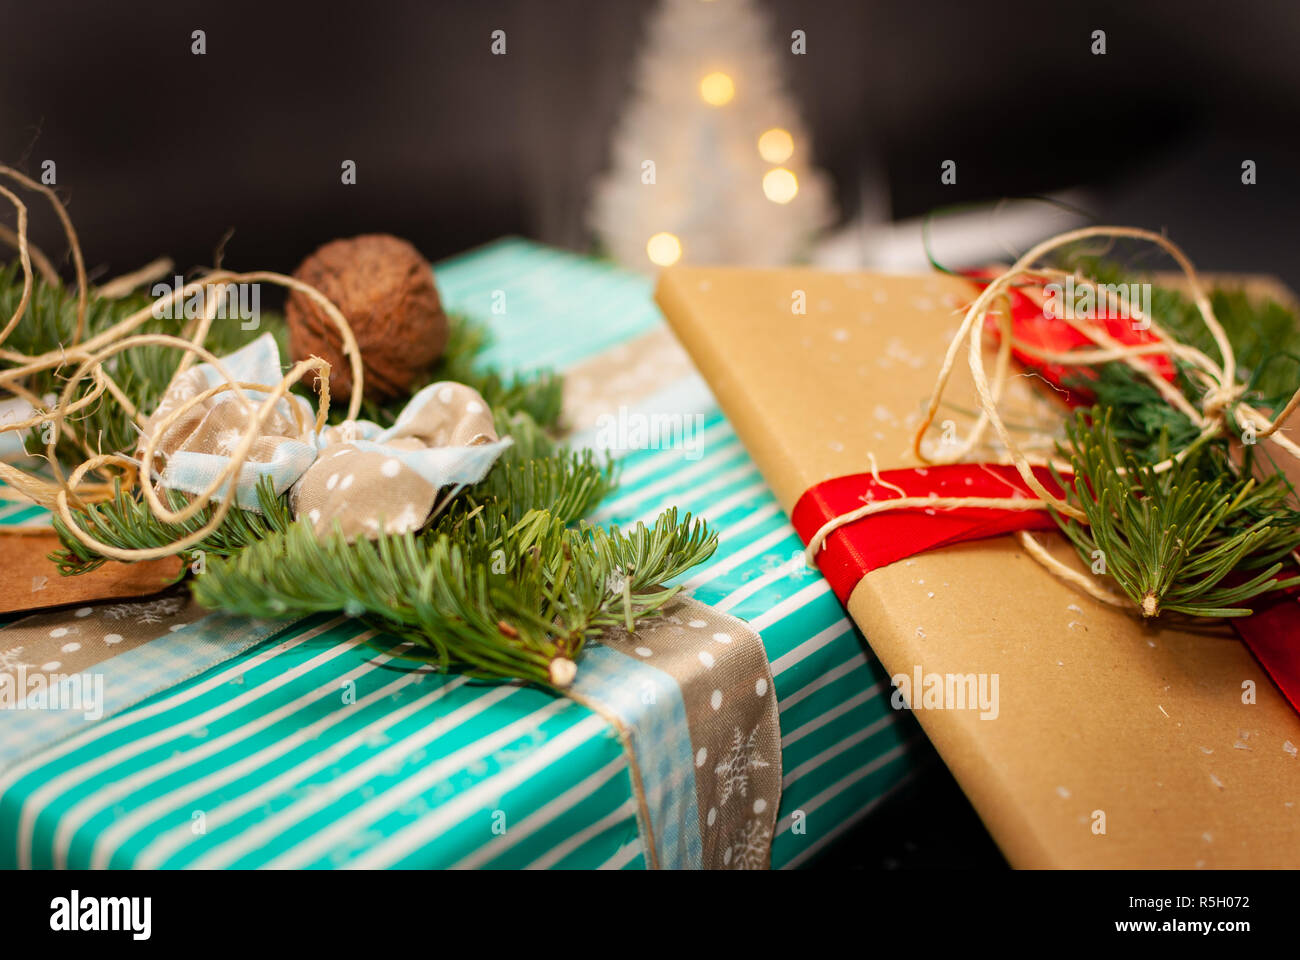 Small Christmas Gifts.Colorful And Decorated Christmas Gifts On Black Background